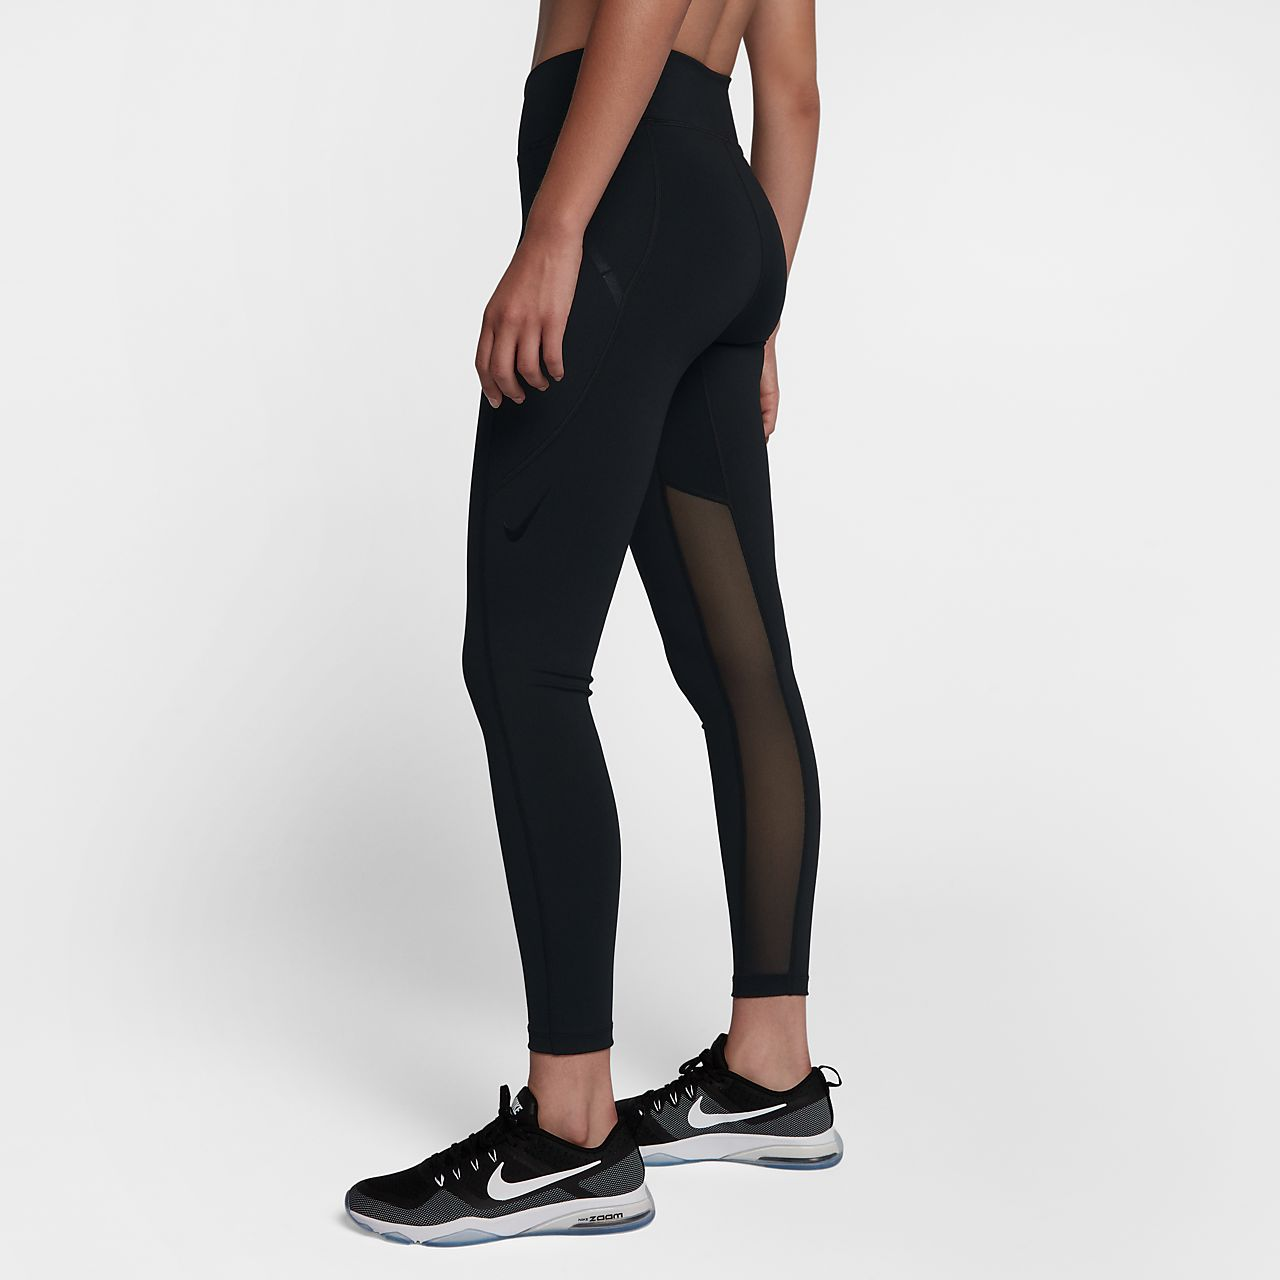 7b670dfe24 Nike Power Pocket Lux Women s High-Waist Training Tights. Nike.com GB